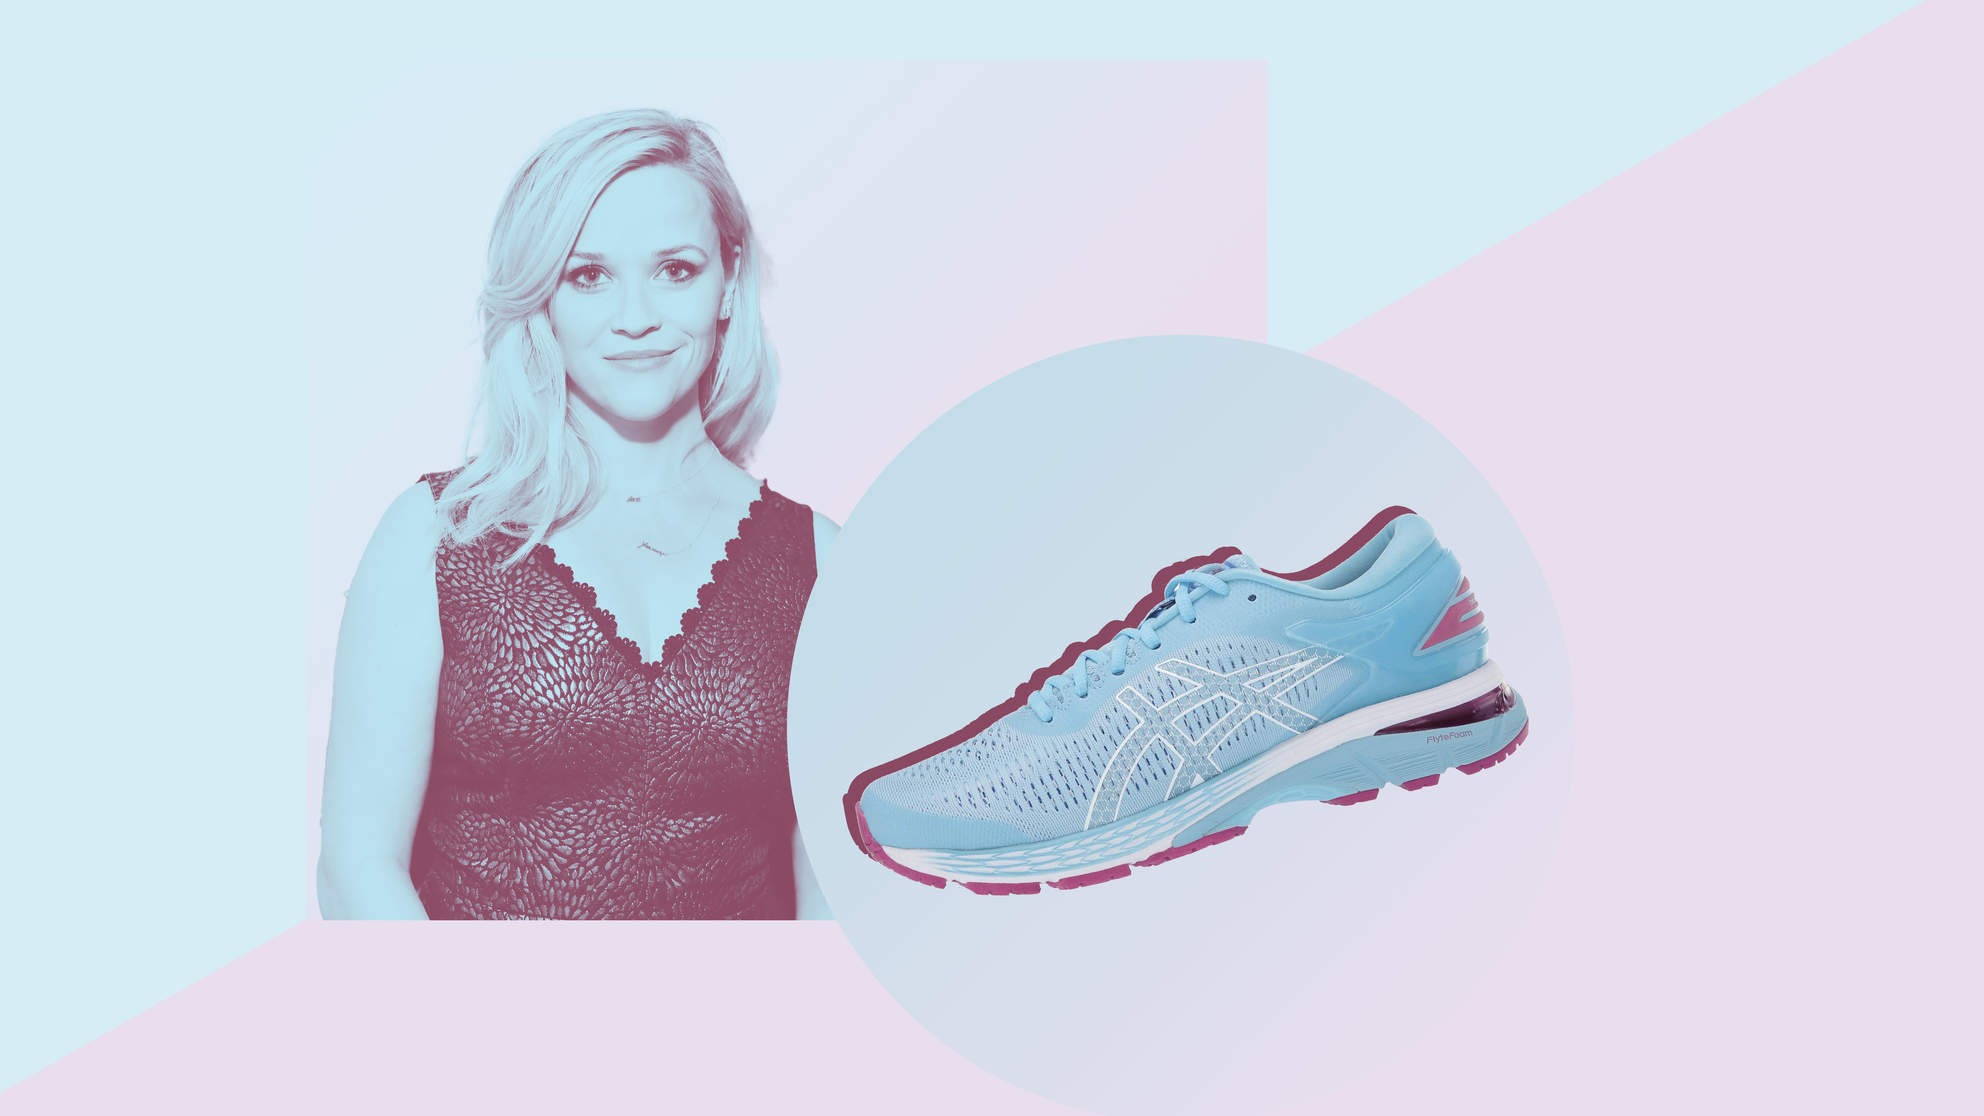 Reese Witherspoon Owns So Many Pairs of These Sneakers That She's Constantly Wearing Them